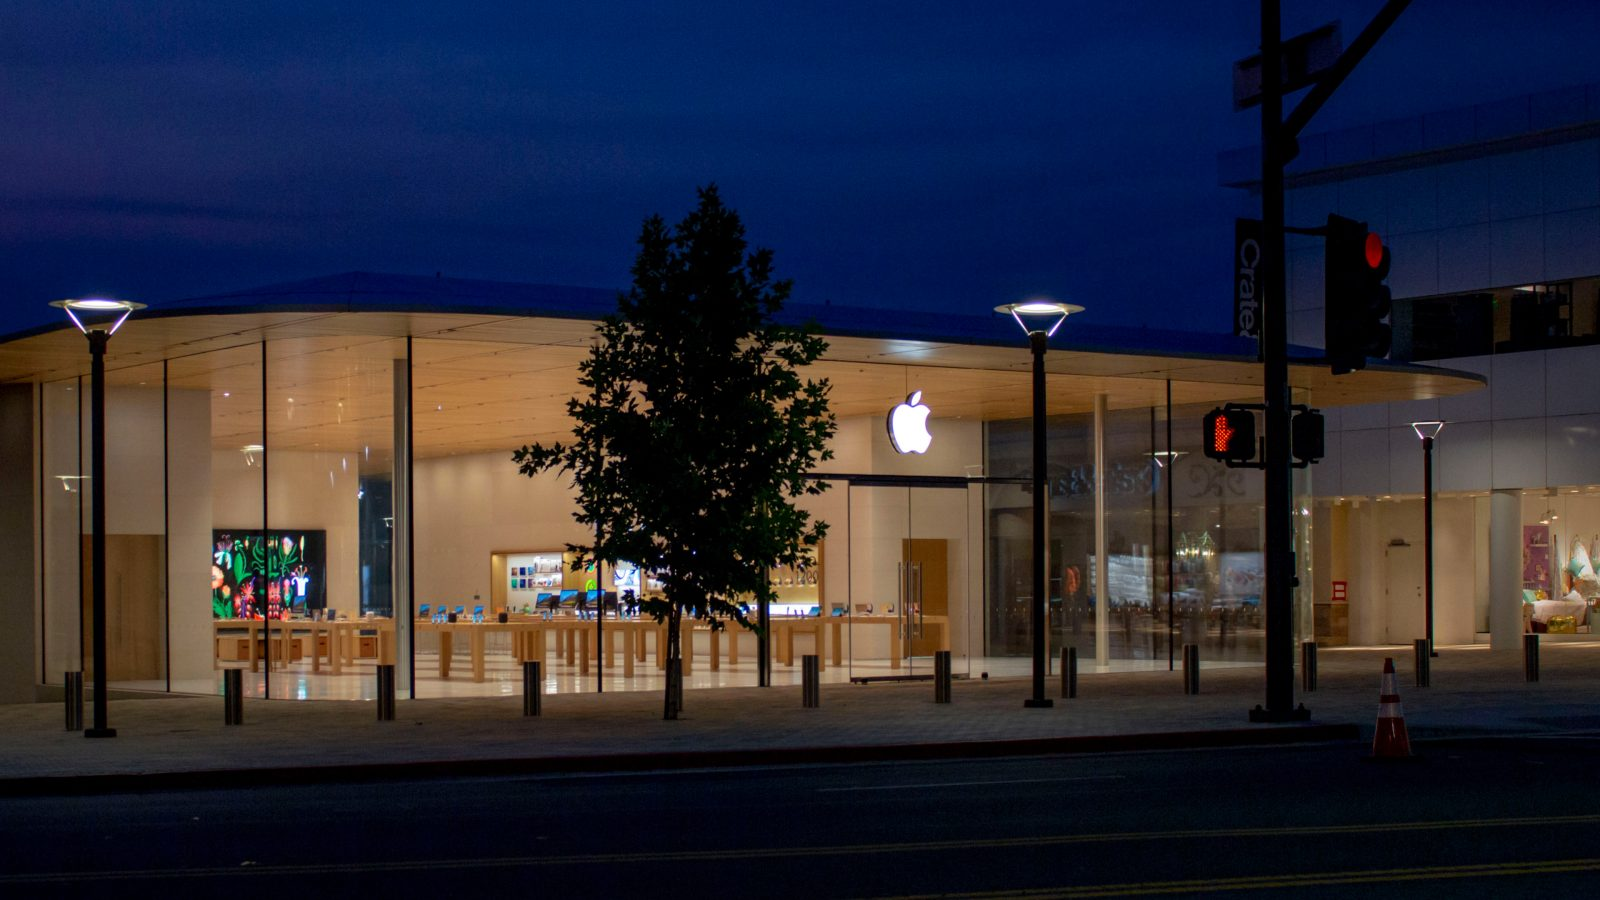 Gallery: Details from Apple Broadway Plaza's Grand Opening in Walnut Creek, CA